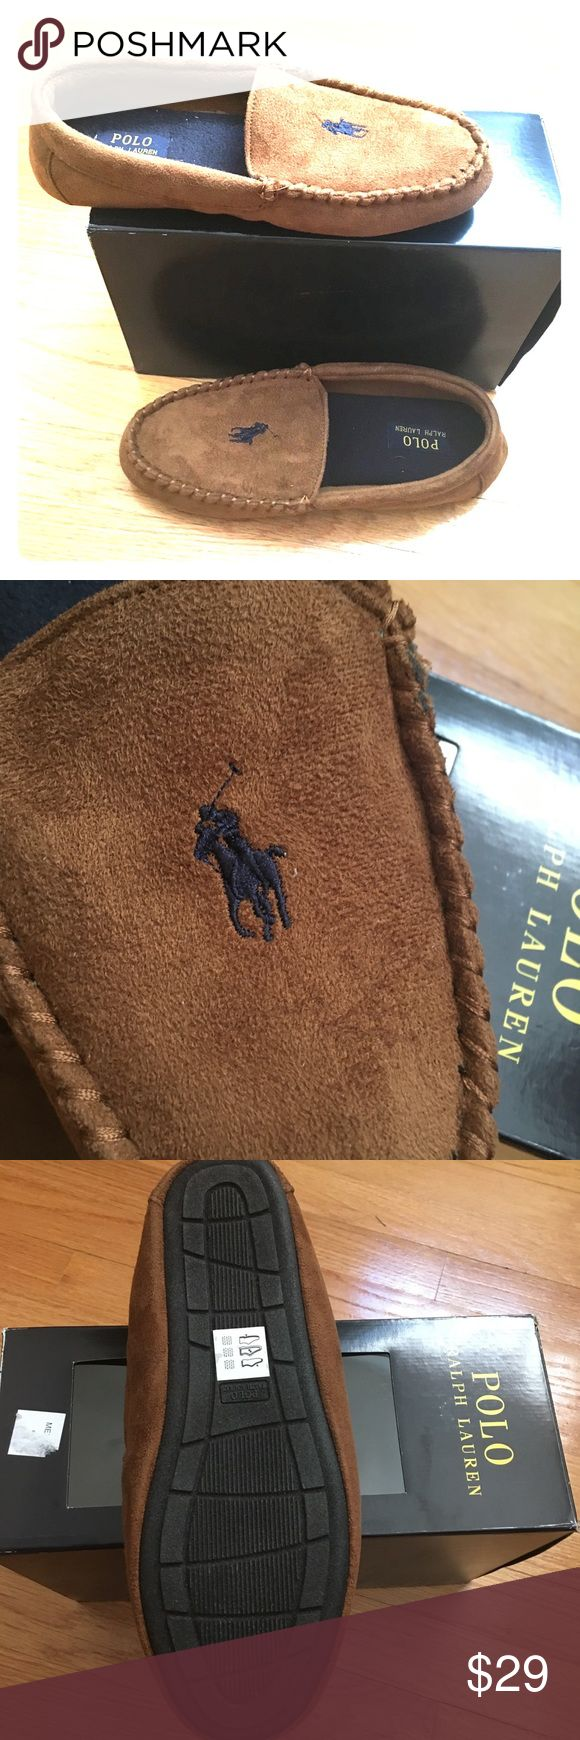 ⭐️NEW Men's Polo Ralph Lauren brown slippers New with box. Polo Ralph Lauren brown slippers.  Navy blue polo emblem on top of each slipper. Cushion insoles. Fleece interior. Rubber Outsole.   🛍BUNDLE=SAVE  🚫TRADE  💯Authentic   🖲USE BLUE OFFER BUTTON TO NEGOTIATE   ✔️Ask Questions Not Answered in Description--Want You to Be Happy! Polo by Ralph Lauren Shoes